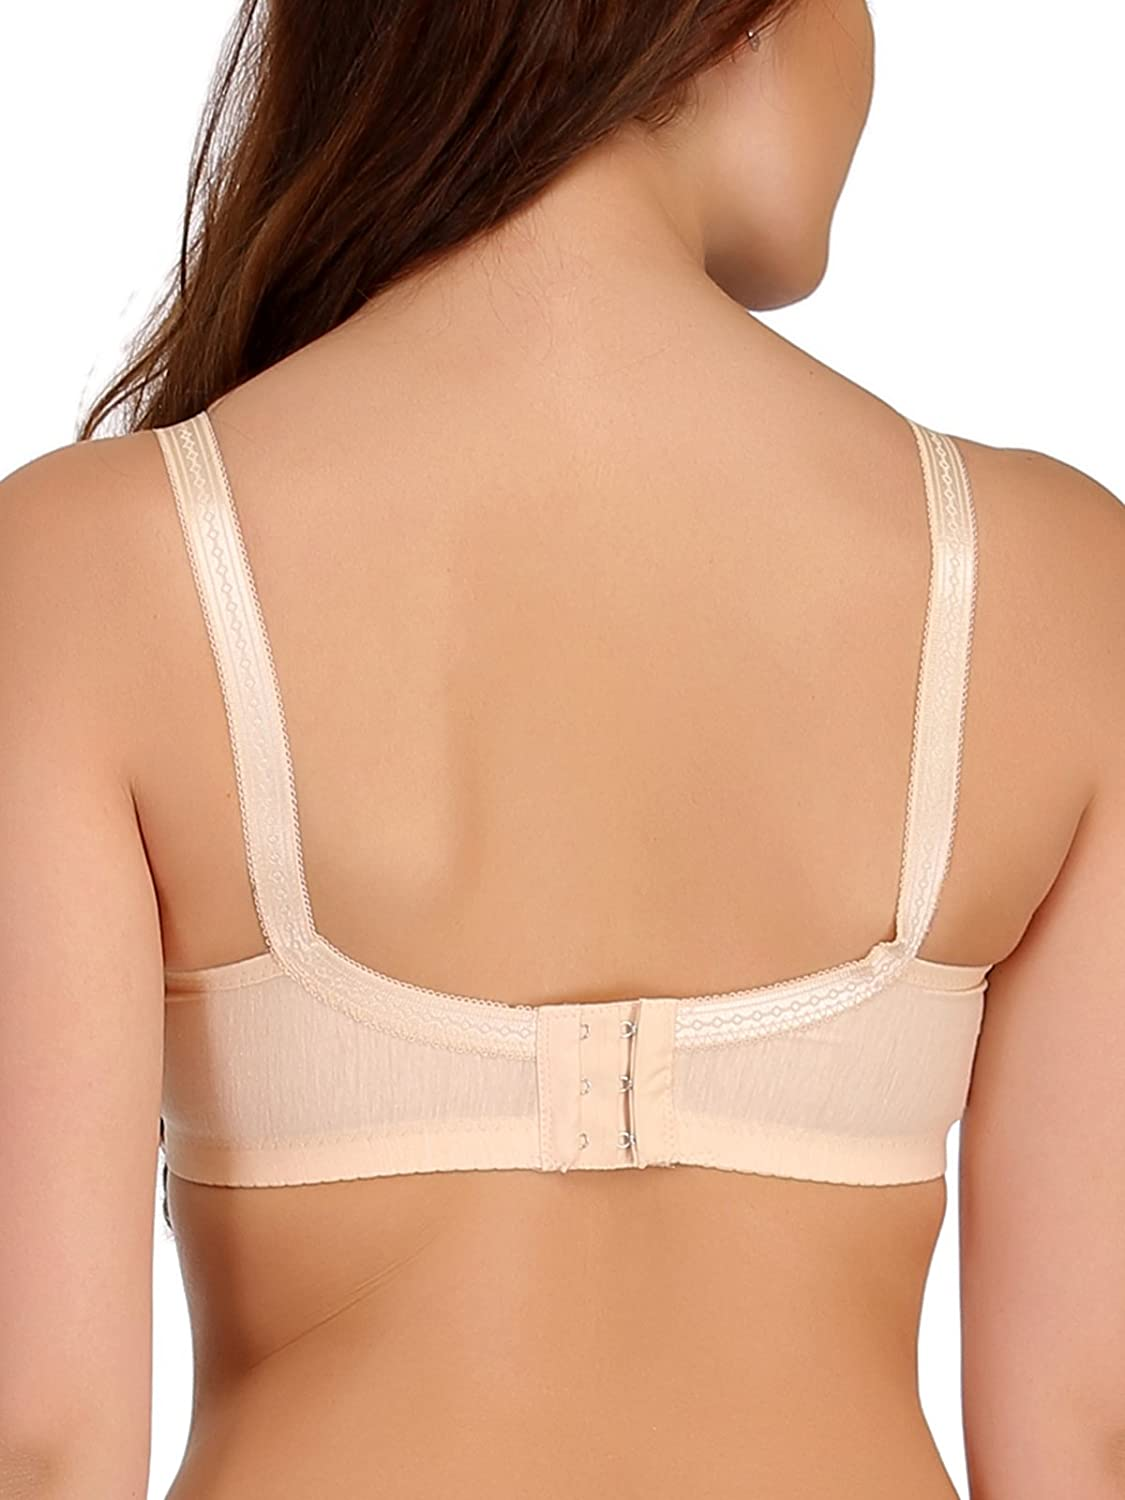 Clovia Cotton Lycra Padded Yellow Nursing Bra With Removable Flaps